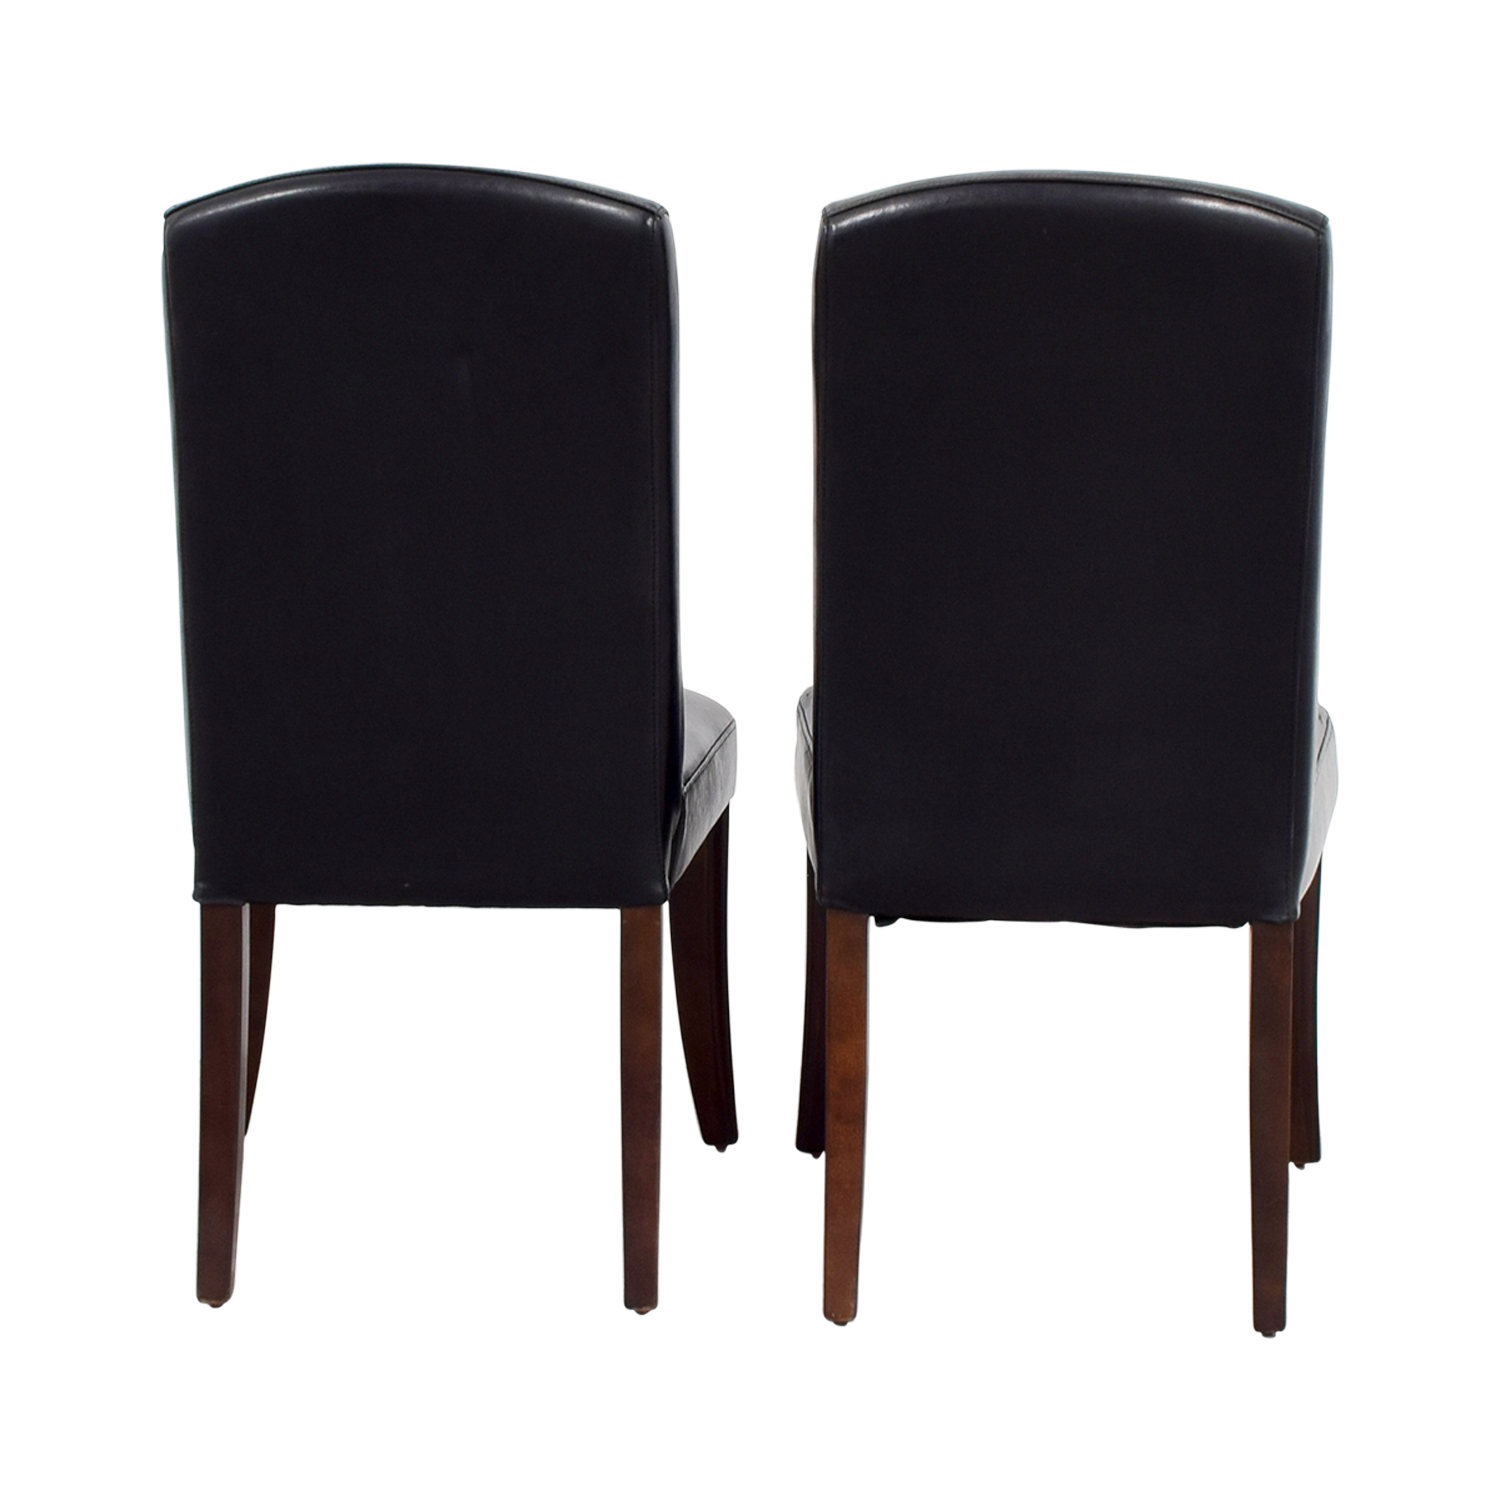 buy Black Padded Leatherette High Back Chairs Chairs